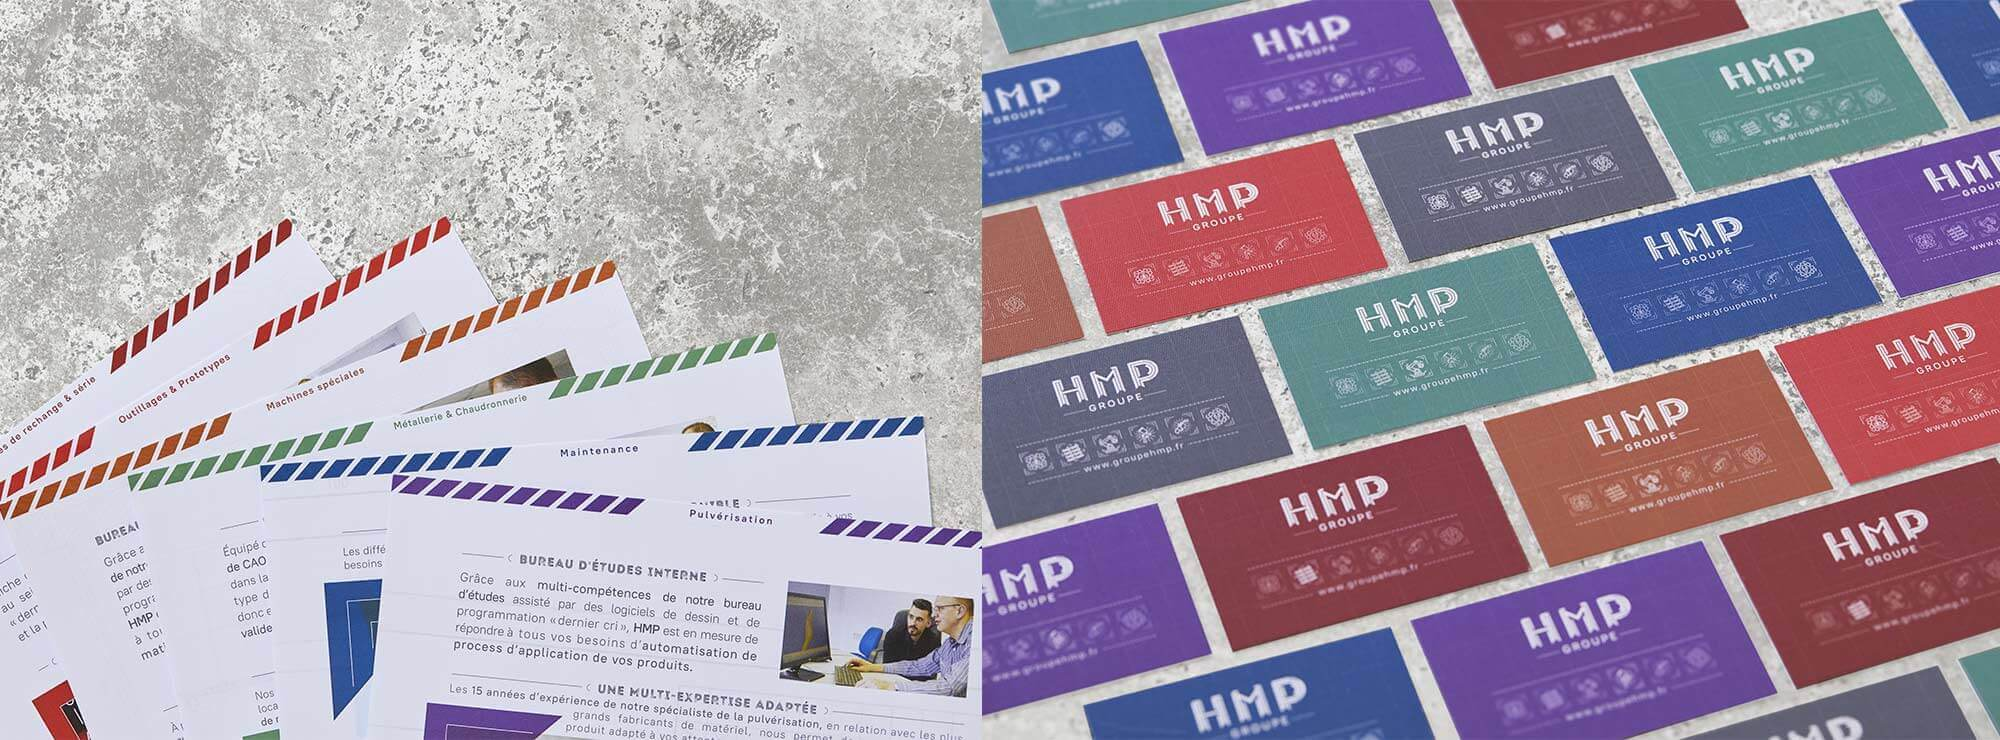 04 hmp logo businesscards metallerie fichestechniques.jpg